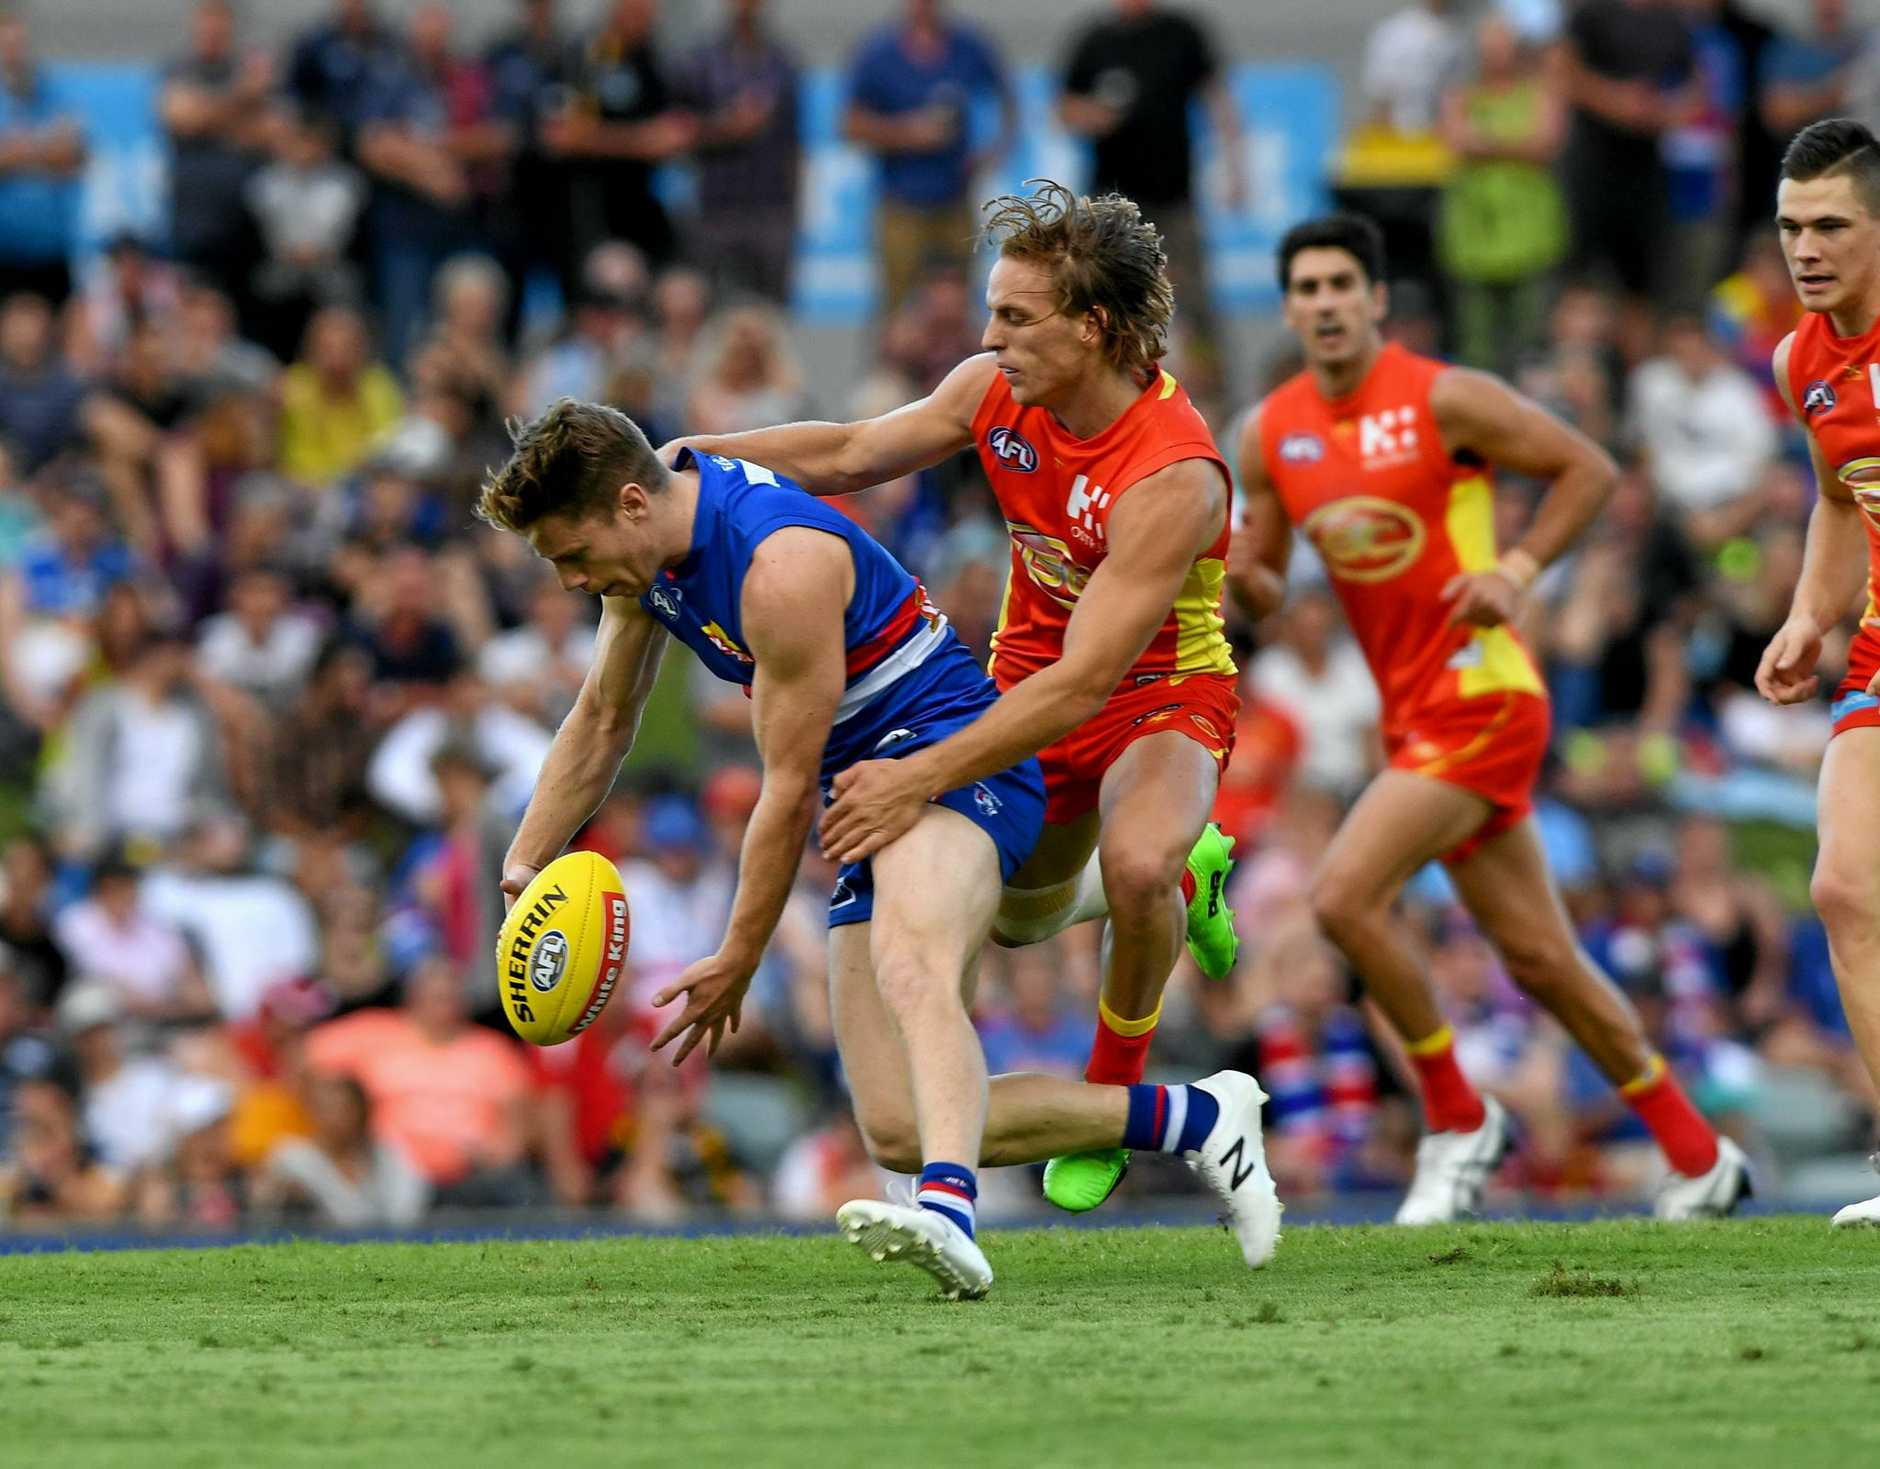 Lachie Hunter of the Bulldogs is tackled by Darcy McPherson of the Suns during the Round 18 AFL match between the Western Bulldogs and the Gold Coast Suns at Cazaly's Stadium in Cairns, Saturday, July 22, 2017. (AAP Image/Brian Cassey) NO ARCHIVING, EDITORIAL USE ONLY